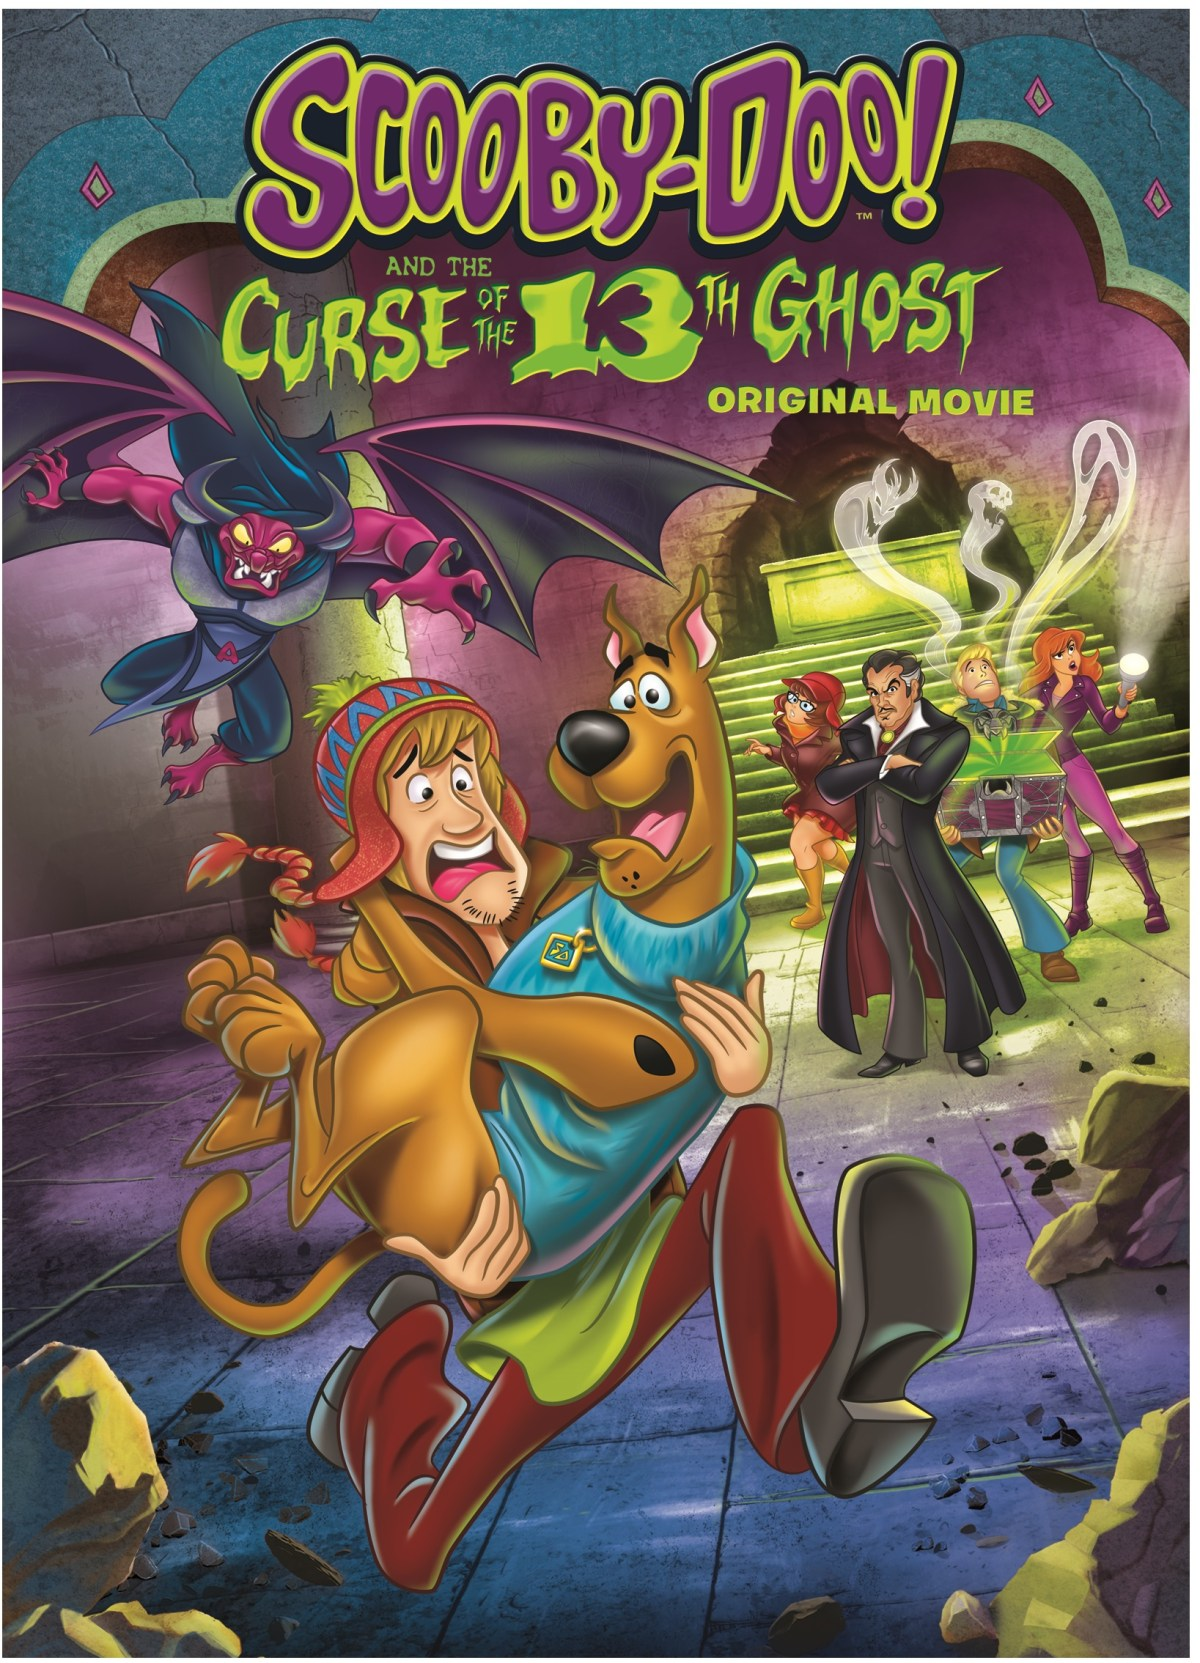 Trailer, Artwork & Release Details For 'Scooby-Doo! And The Curse Of The 13th Ghost'; Arrives On DVD & Digital February 5, 2019 From Warner Bros 10